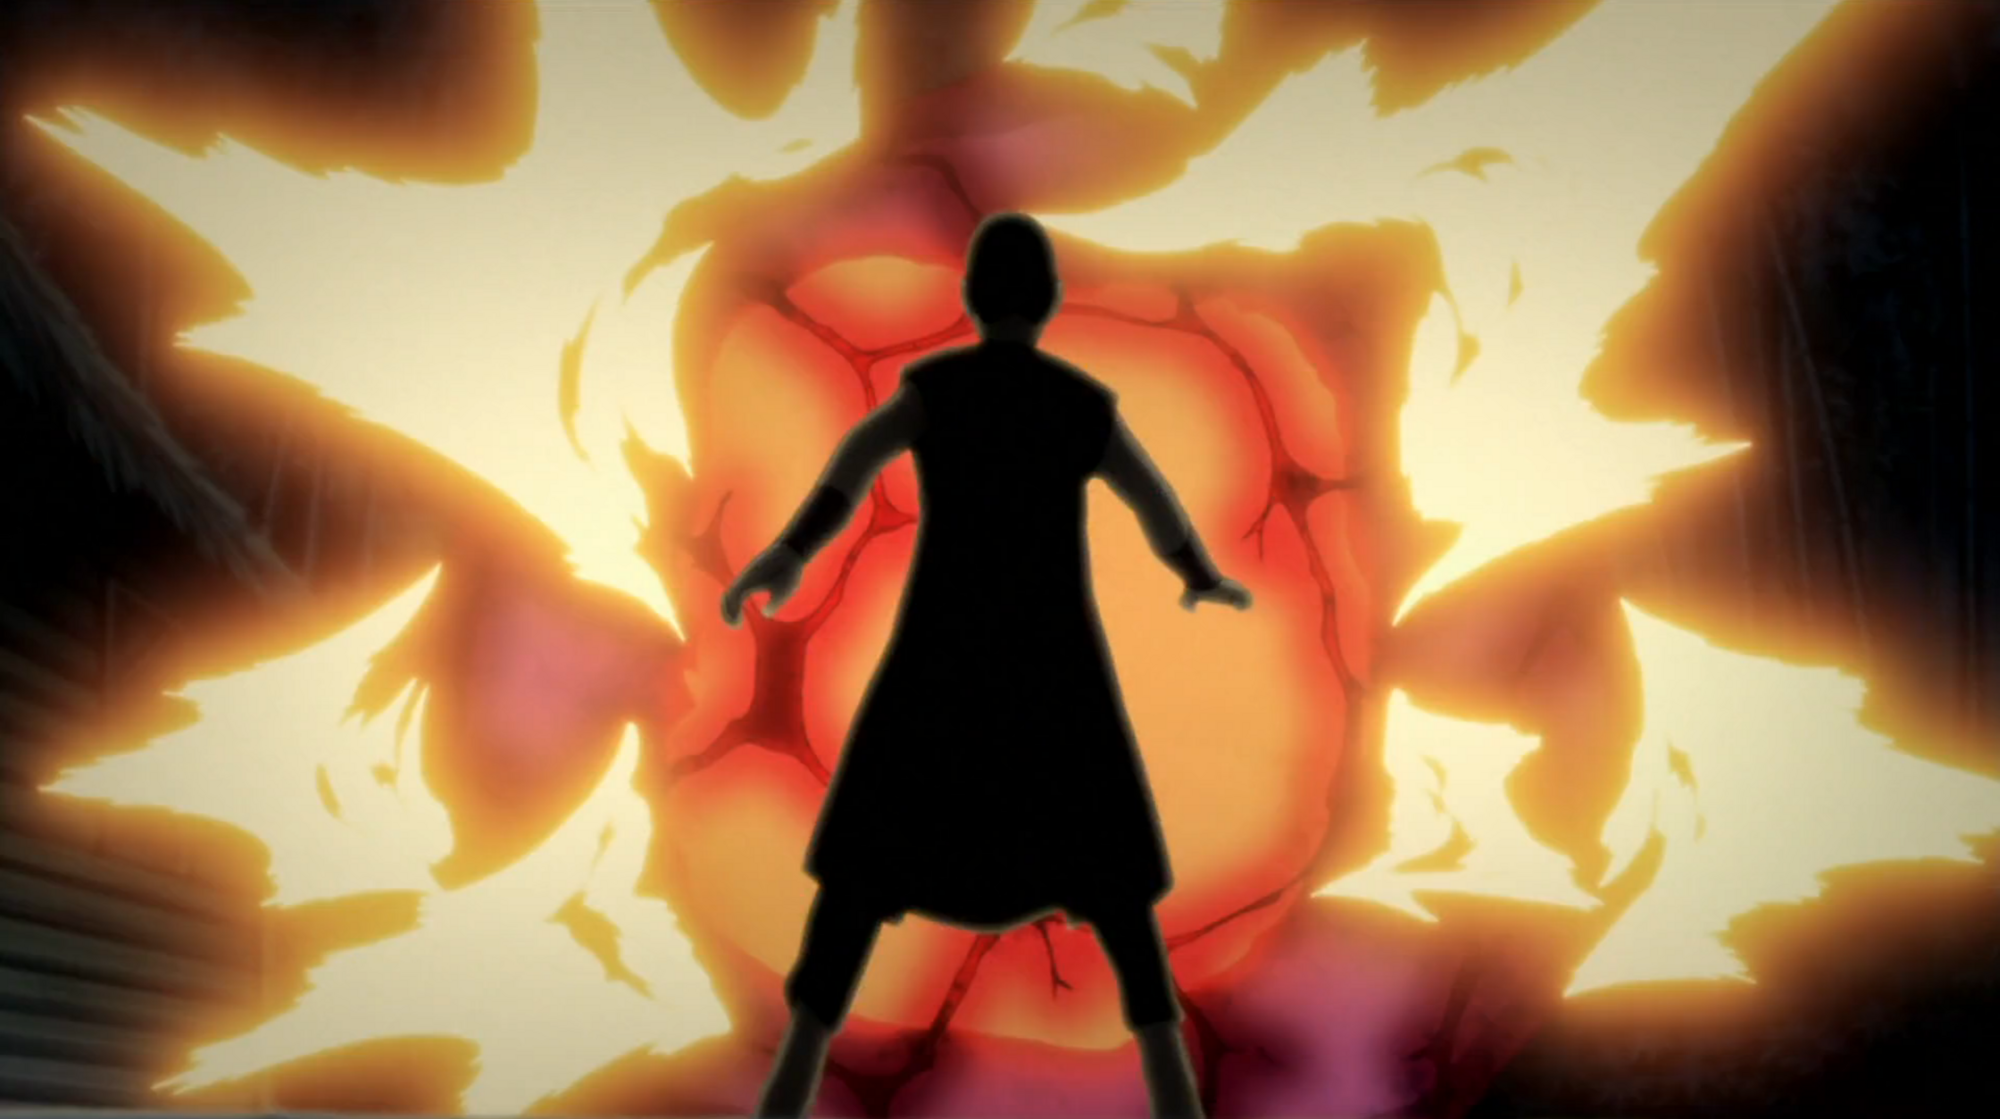 The Exploding Human | Narutopedia | FANDOM powered by Wikia